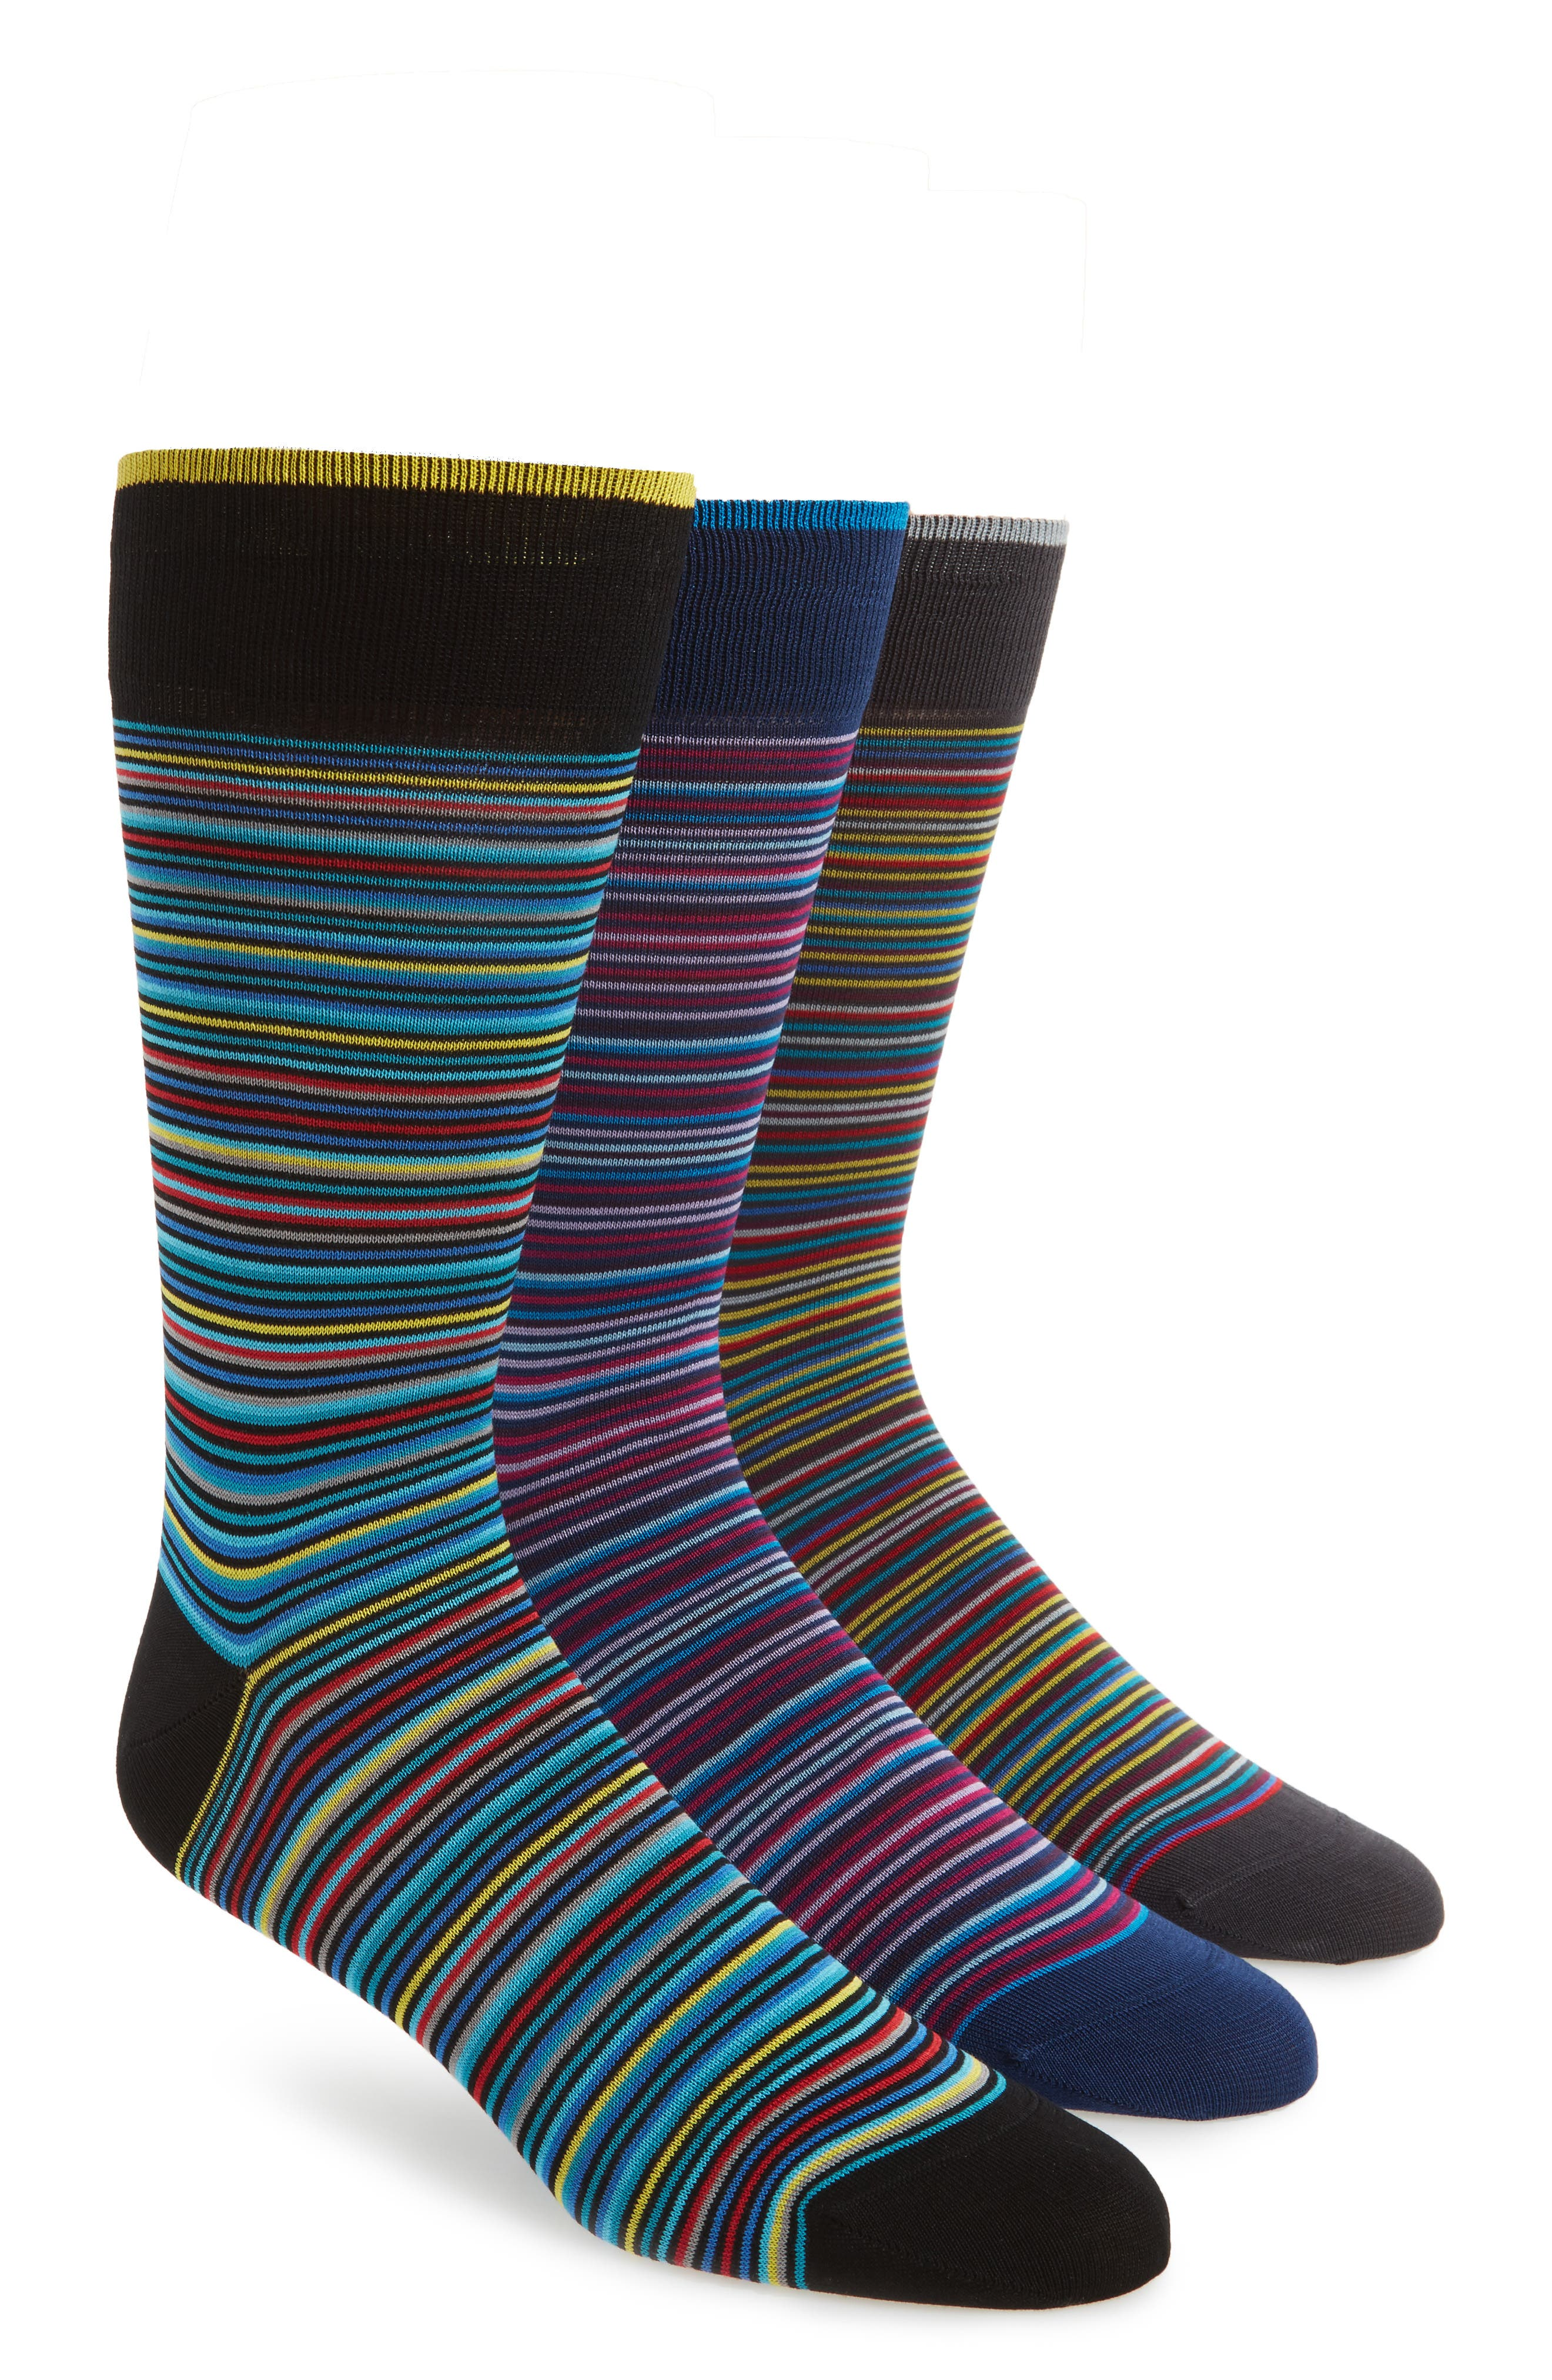 Main Image - Bugatchi 3-Pack Stripe Cotton & Cashmere Blend Socks ($59.85 Value)